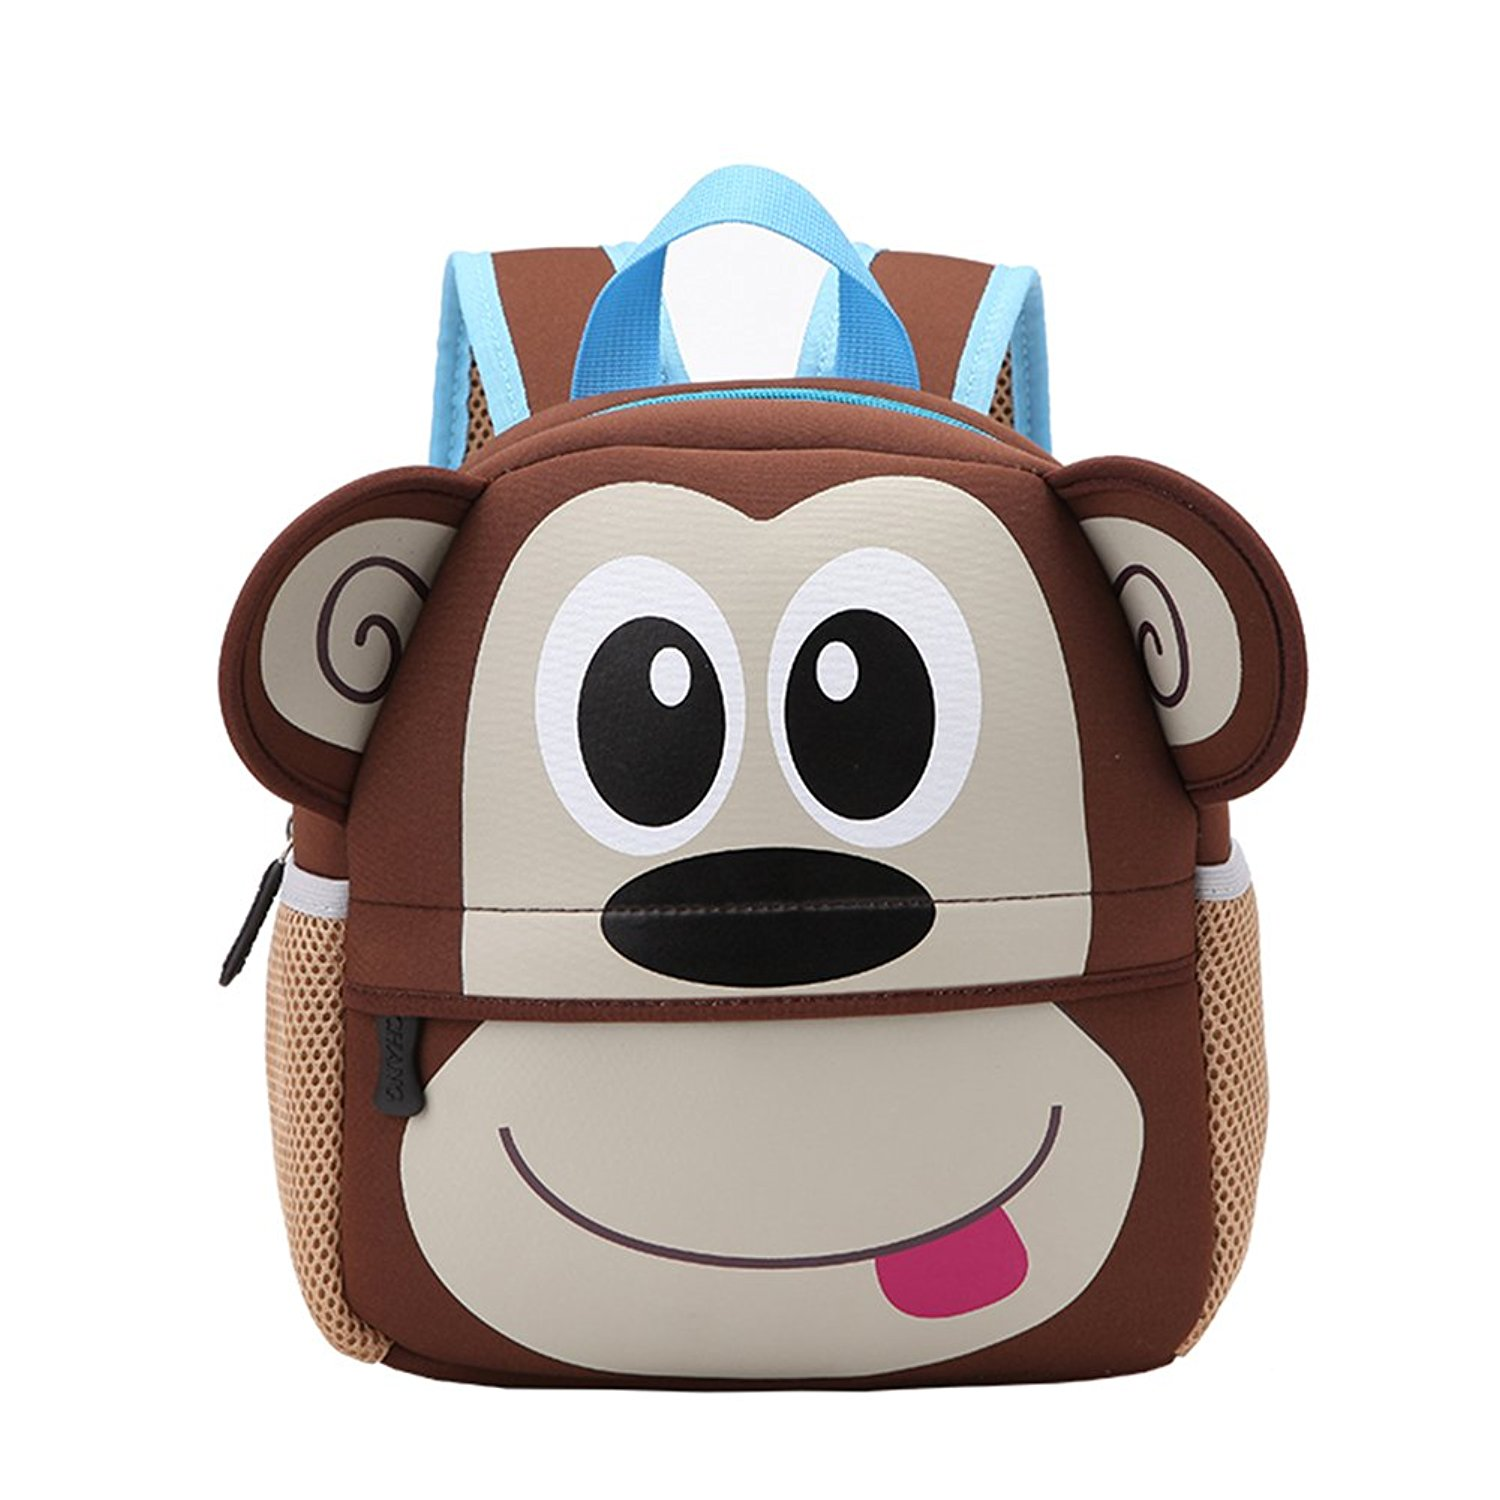 8b749adcaf3f Get Quotations · Toddler Backpack Kids School Bag Lunch Bag Cute 3D Cartoon  Animal Book Bag for 1-